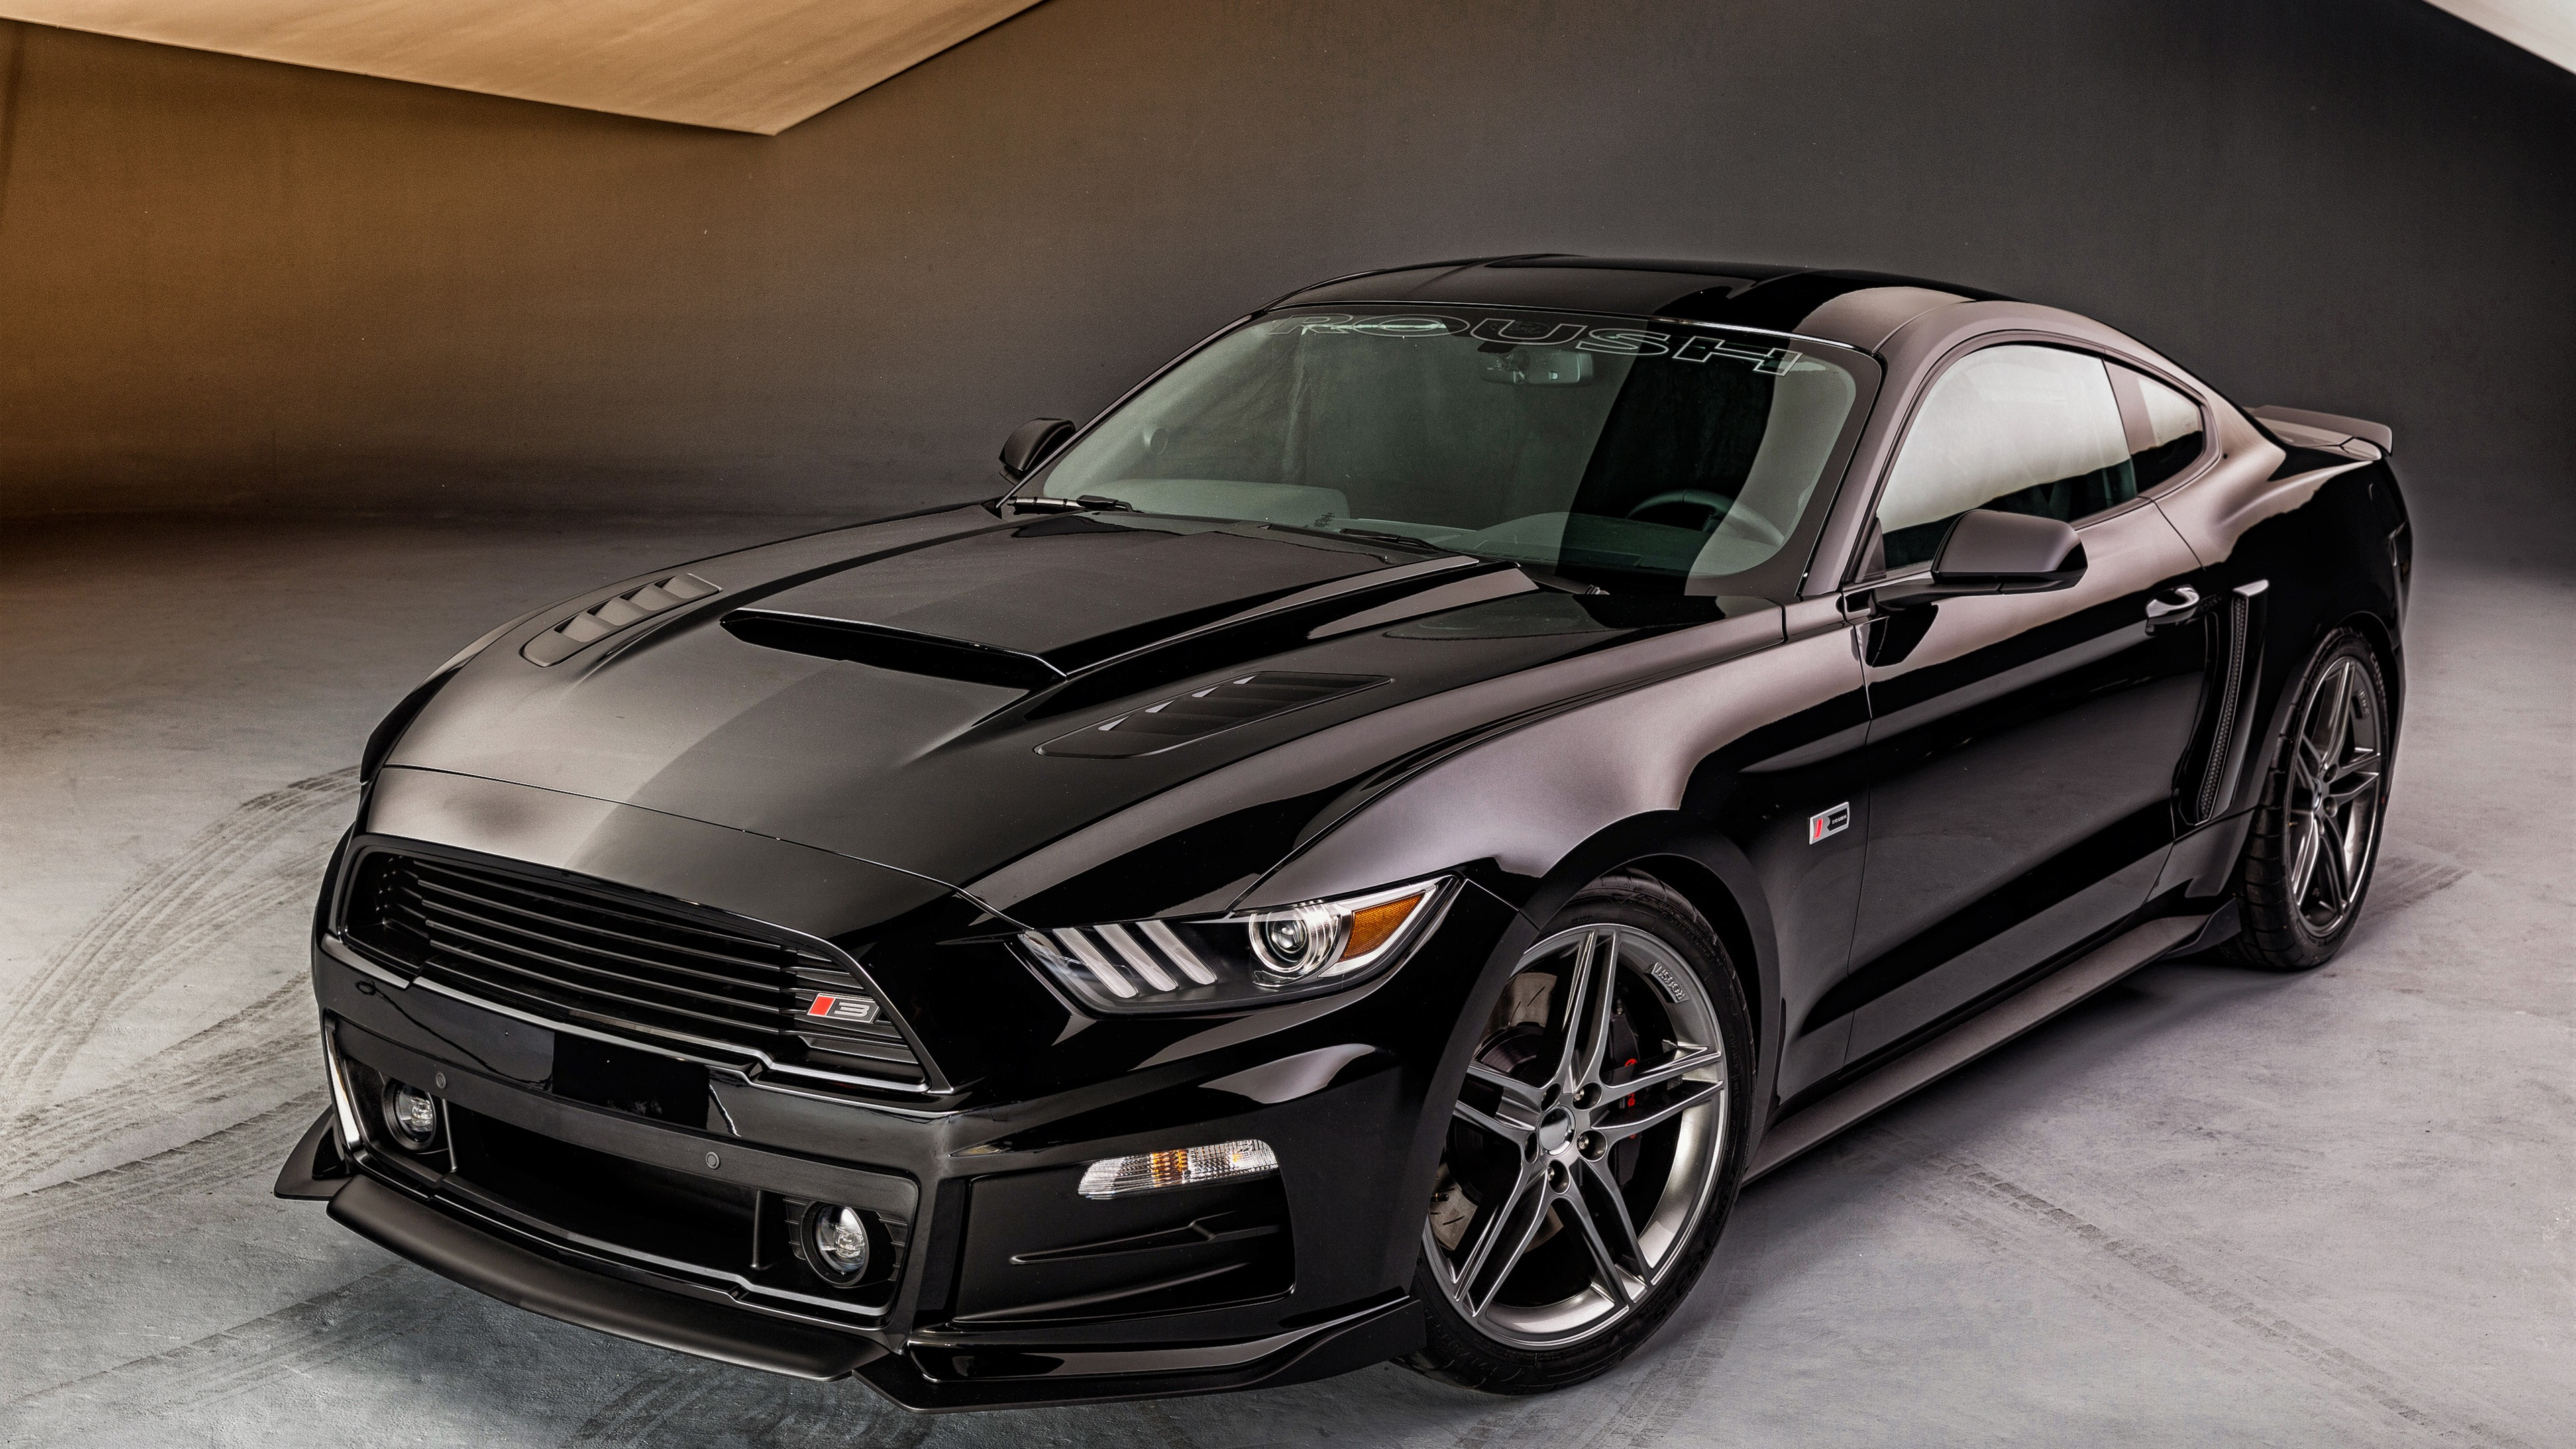 2015 Roush Ford Mustang RS Wallpaper | HD Car Wallpapers